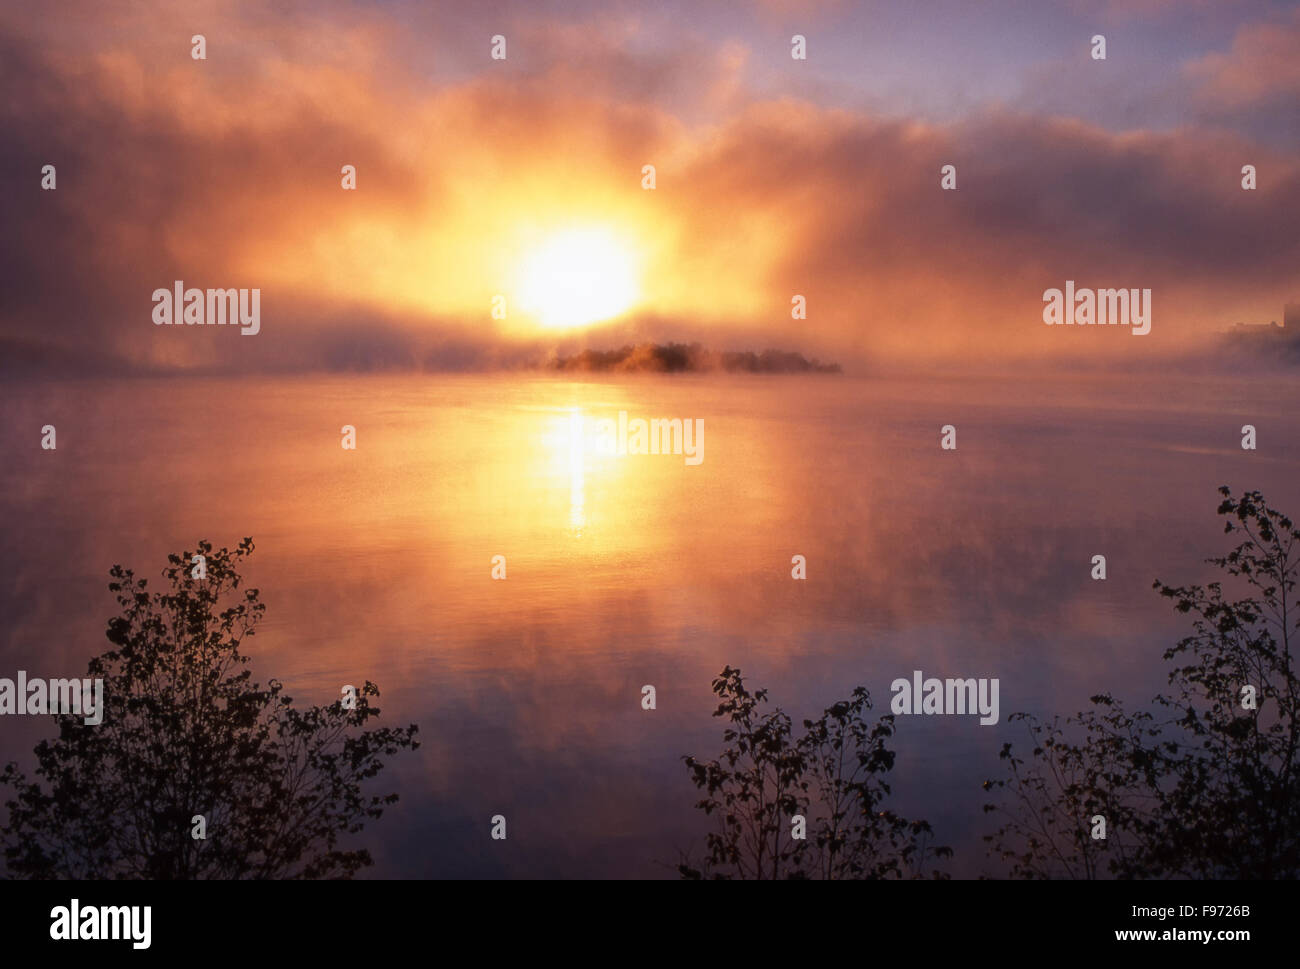 Sunrising through fog bank over Ramsey Lake, Sudbury, Ontario, Canada - Stock Image